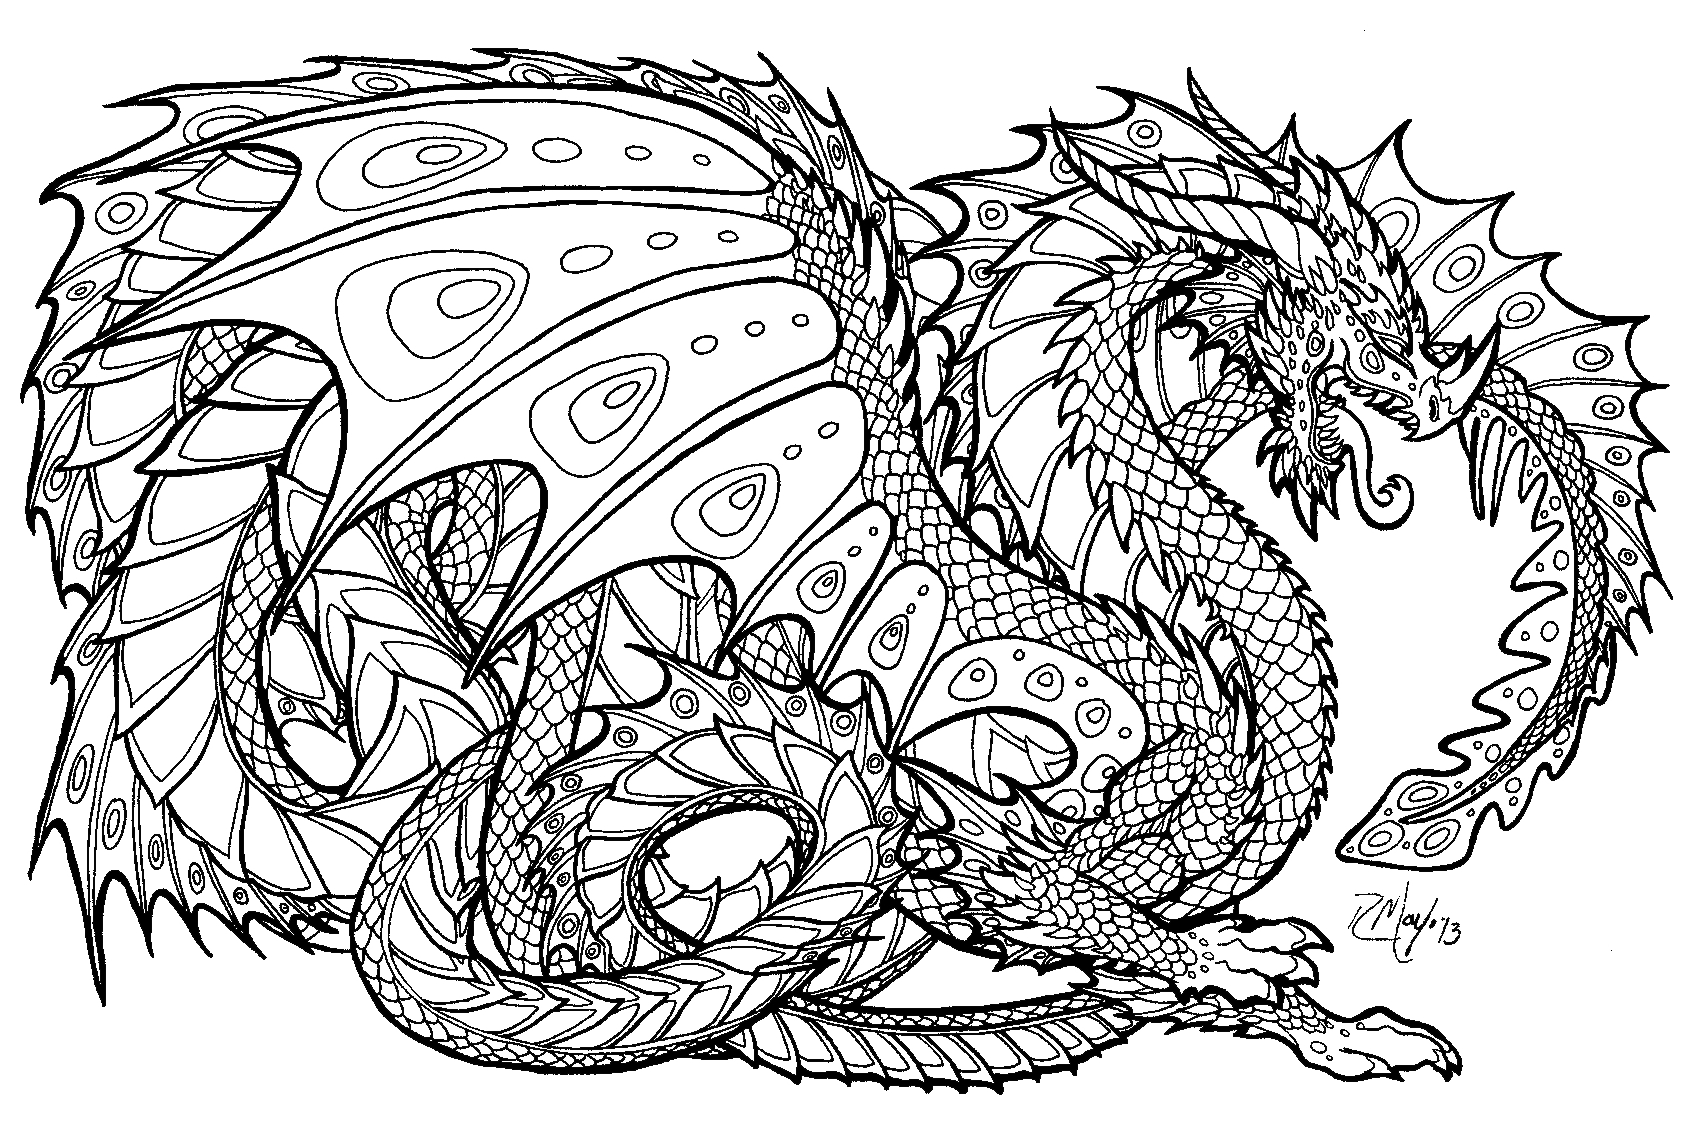 online coloring pages for adults - free coloring media 5539